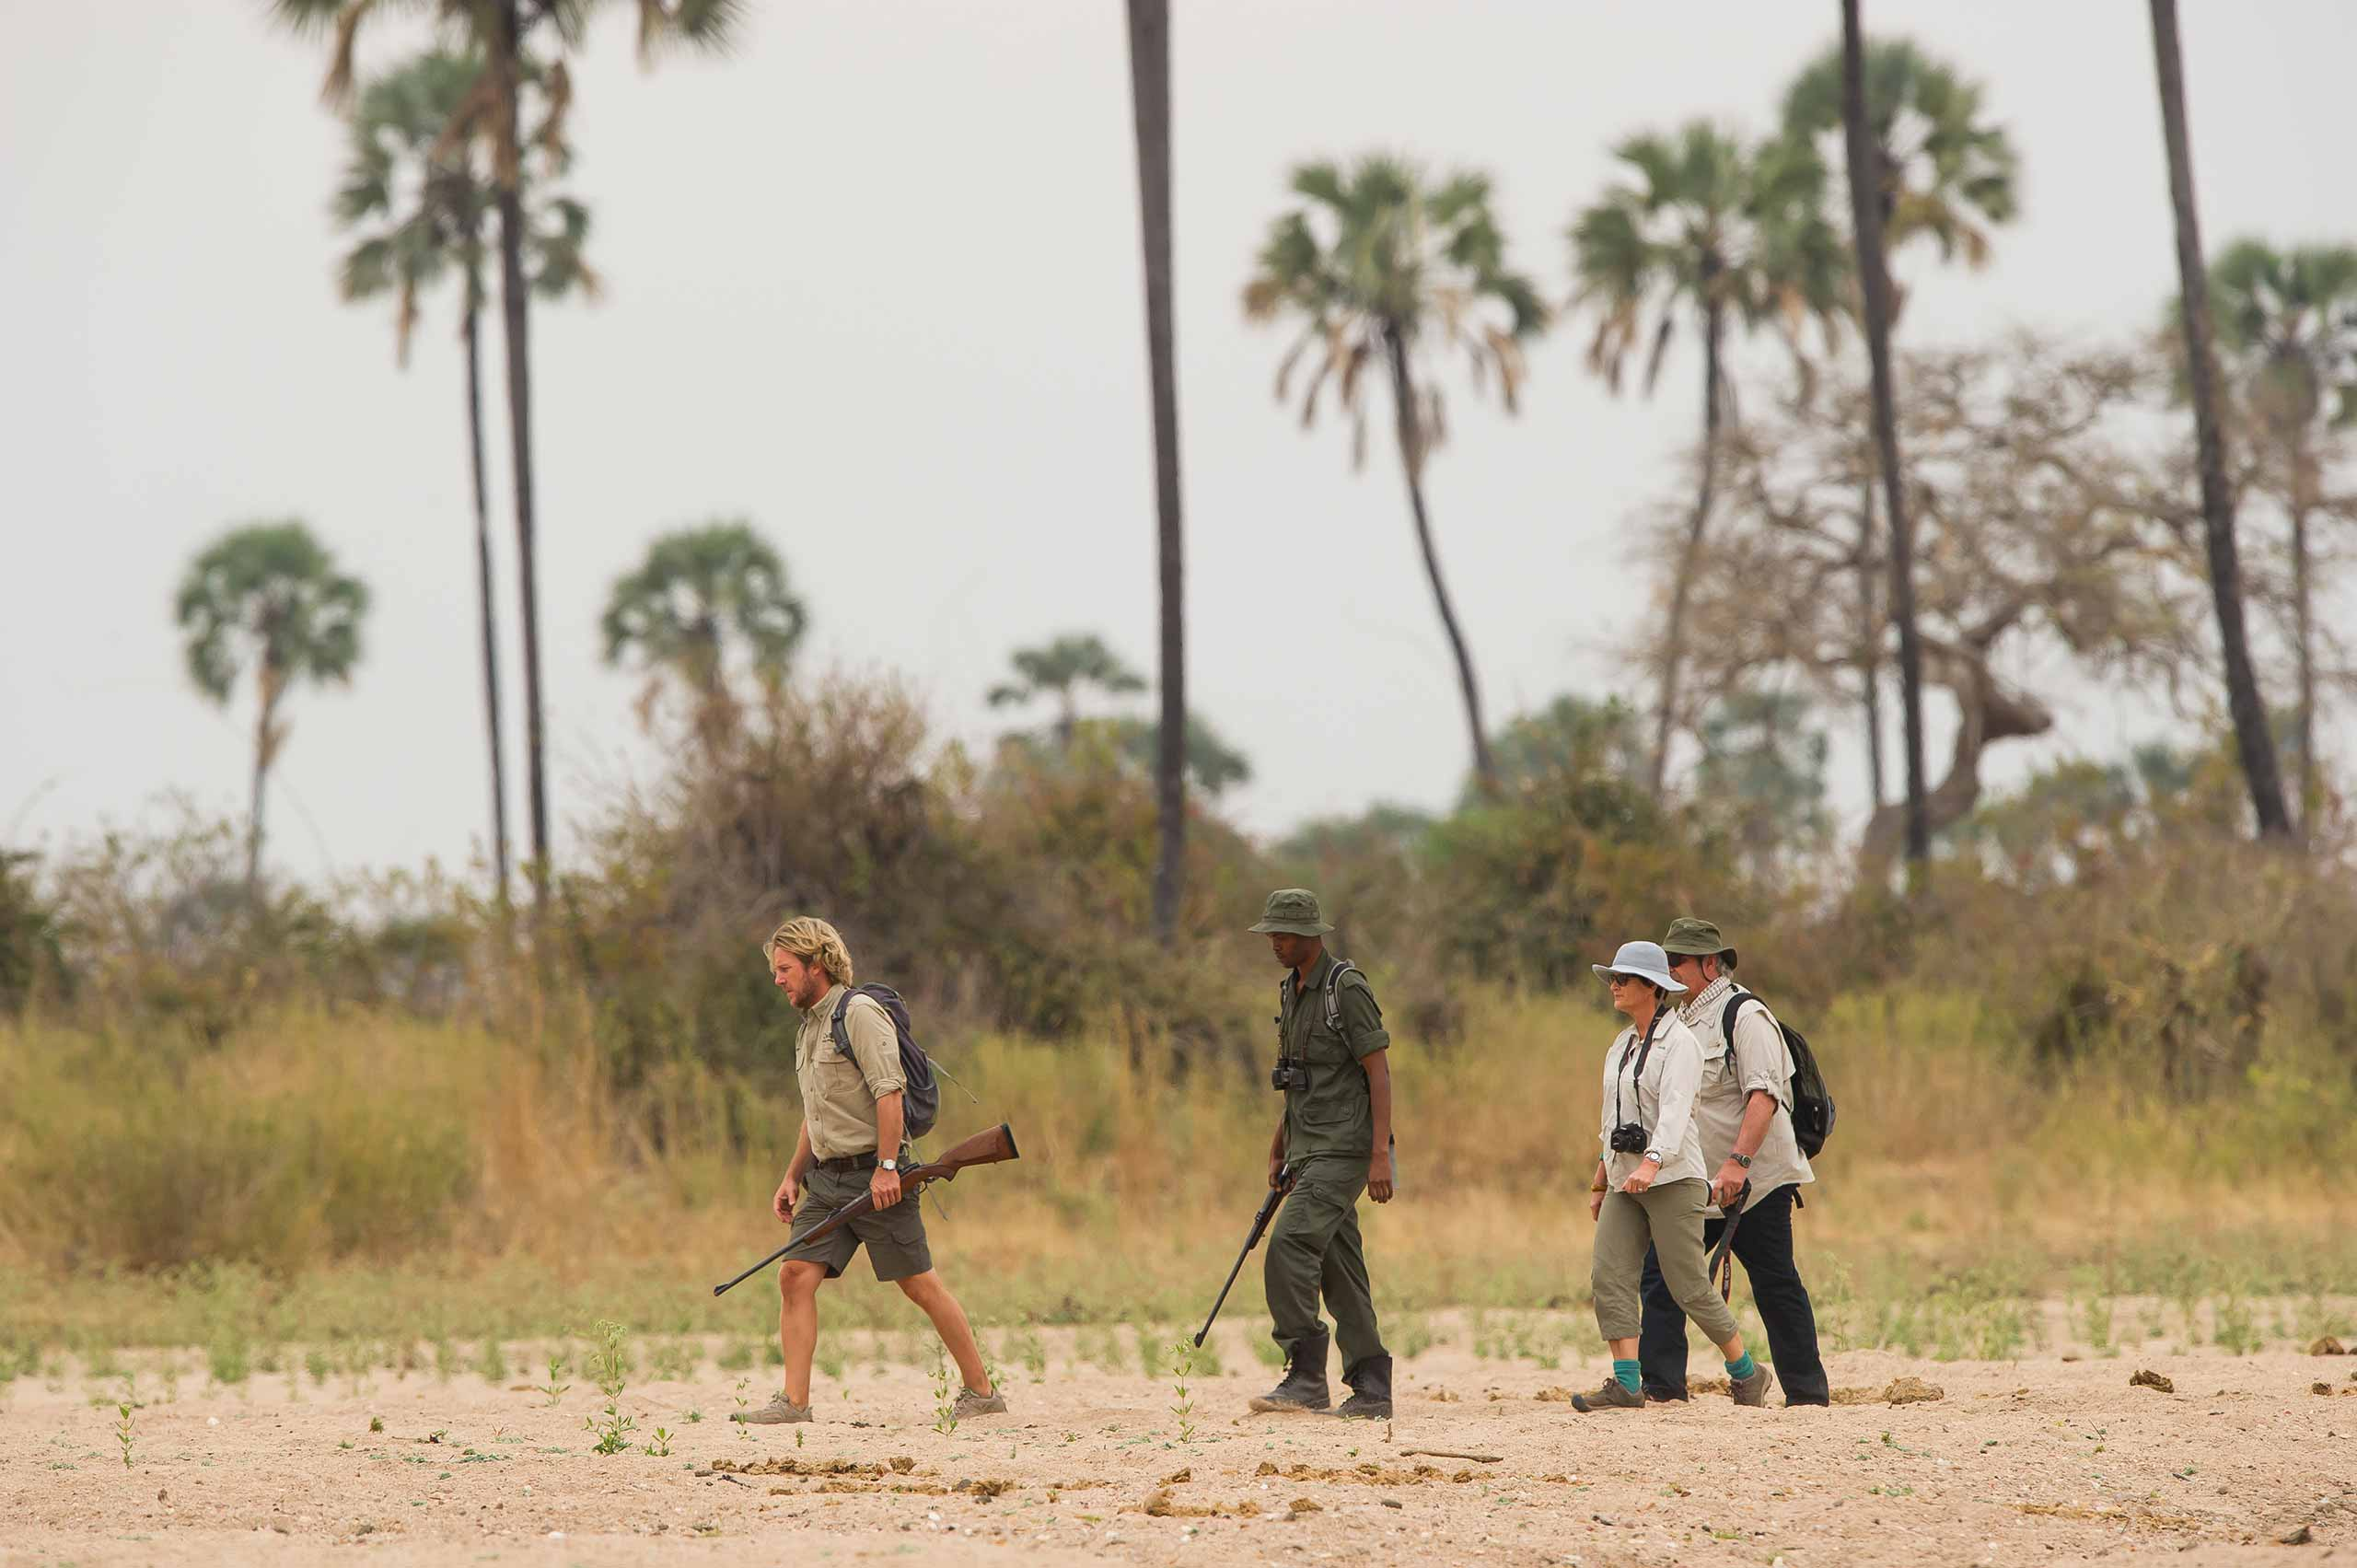 enkosi-africa-safari-tanzania-ruaha-asilia-Ruaha-National-Park-Walking-Safari-Paul-Joynson-HIcks-MR